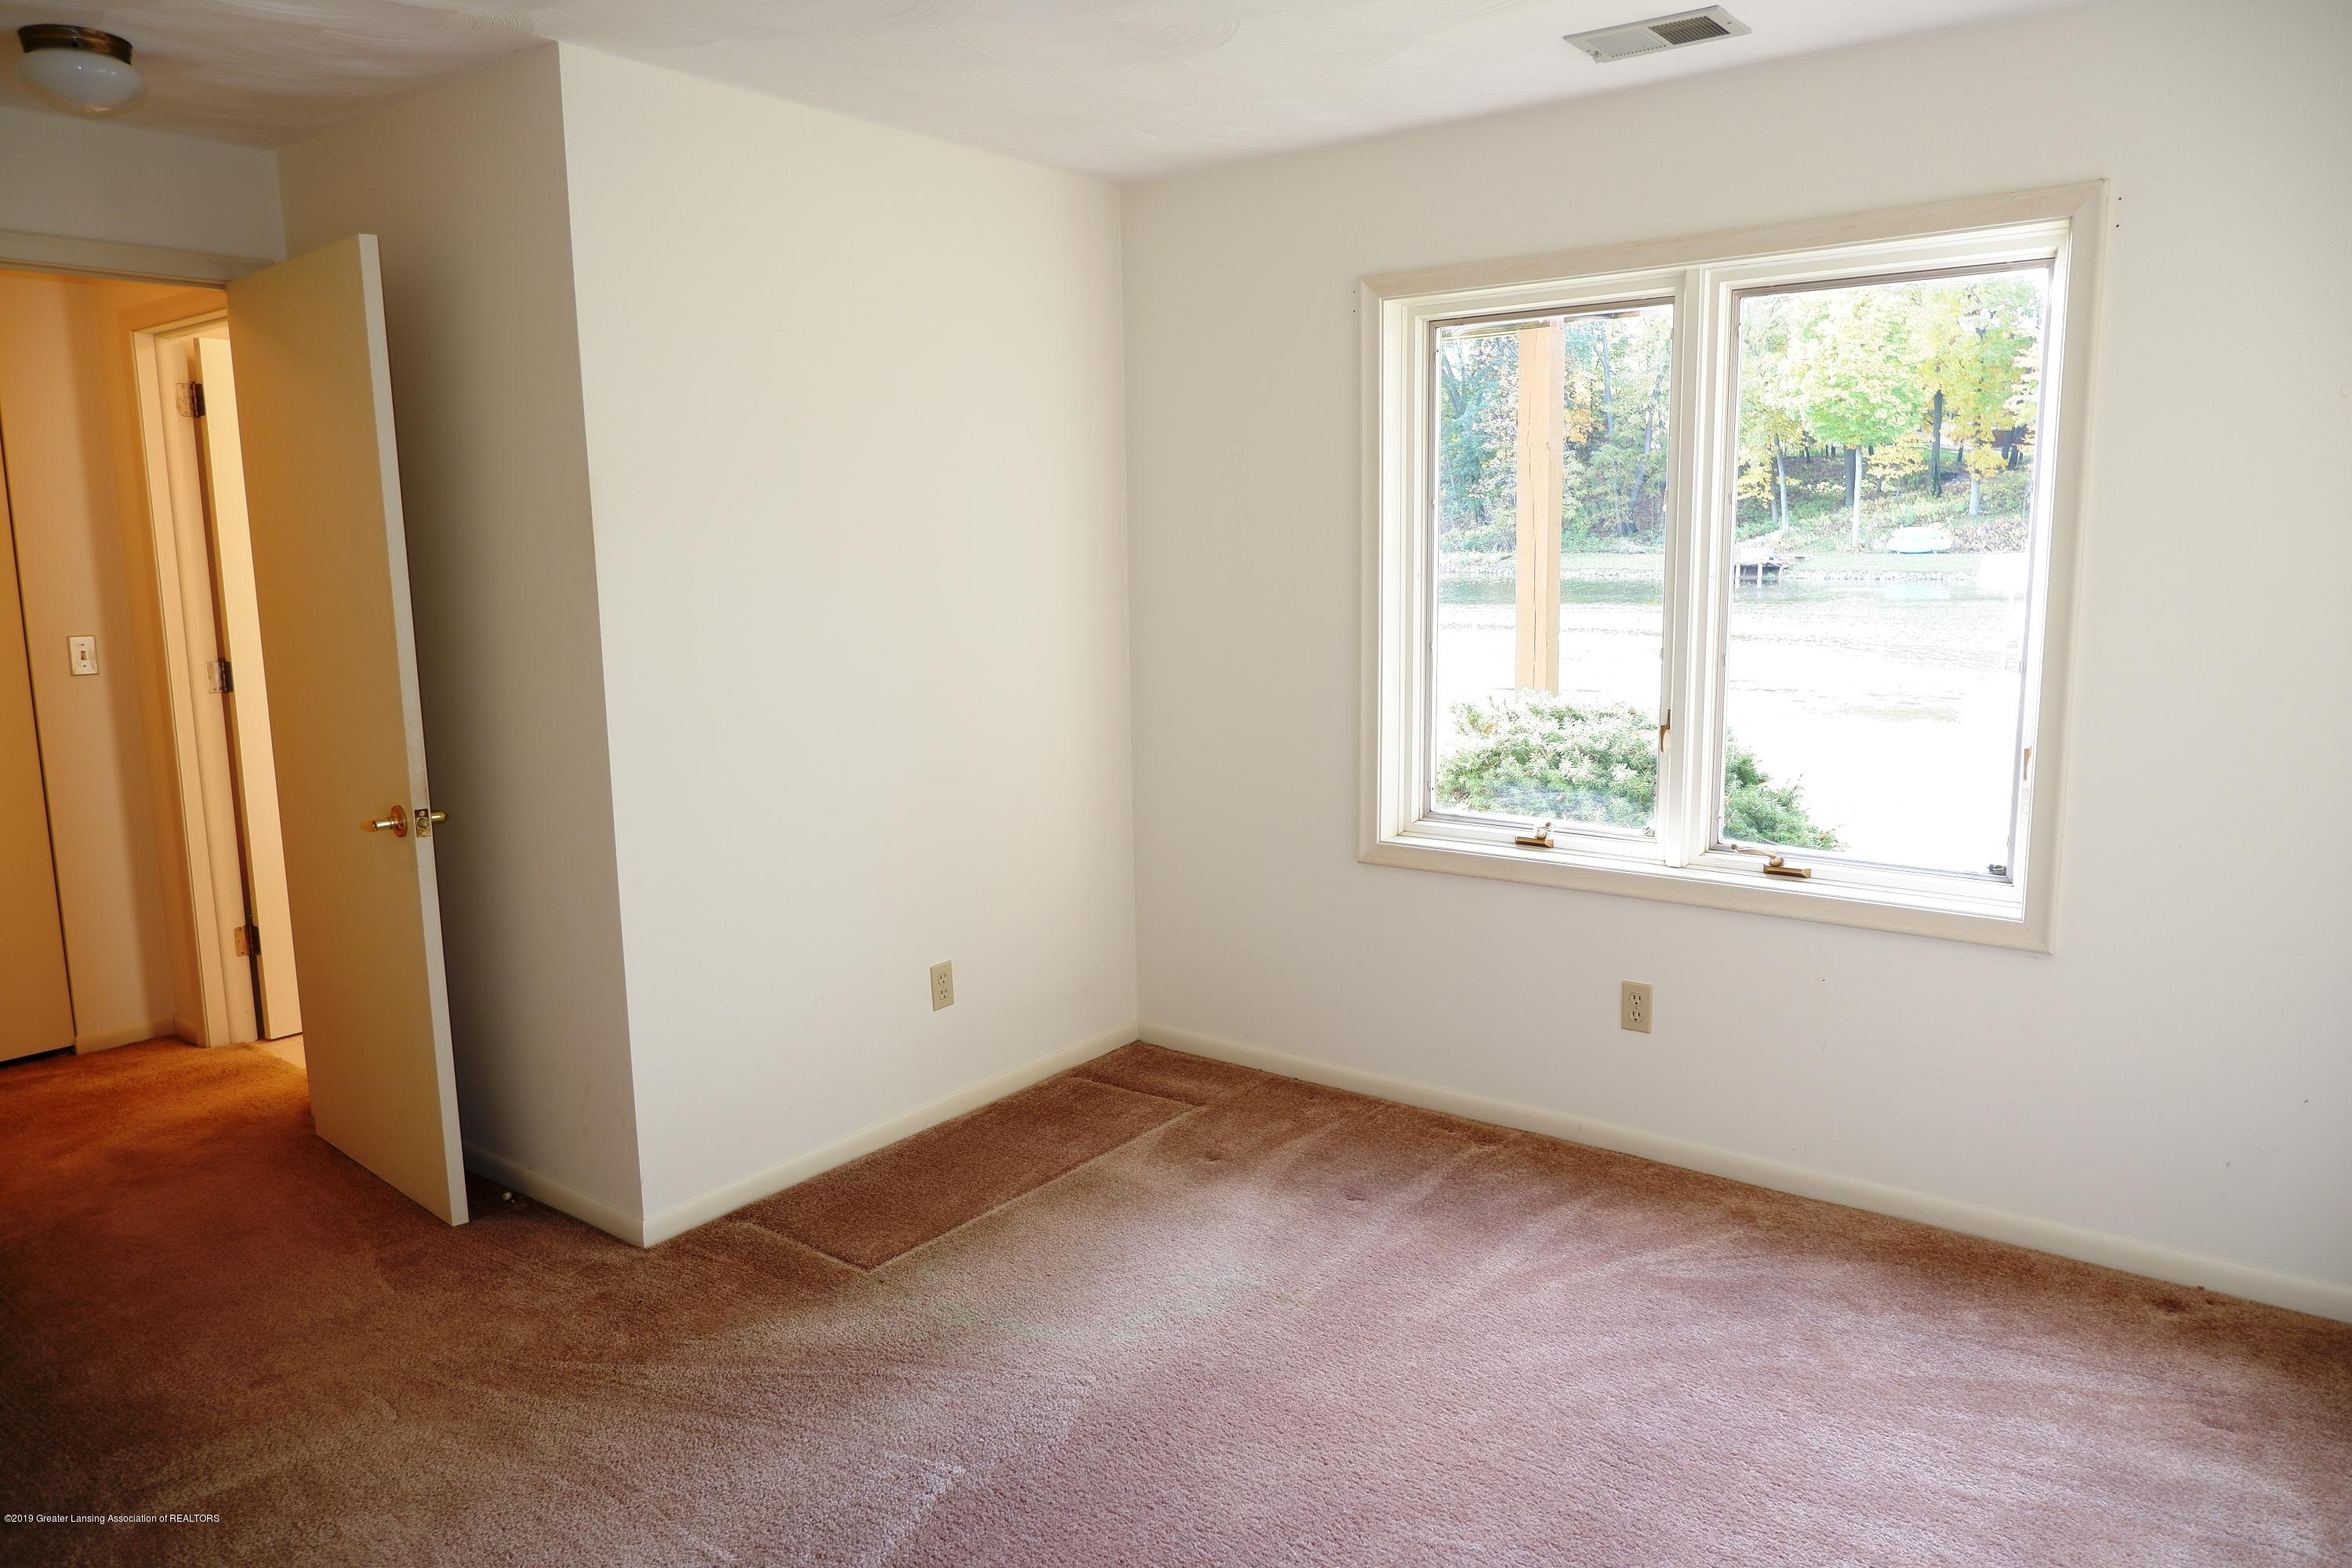 8933 W Scenic Lake Dr - 3rd bedroom - LL - 36